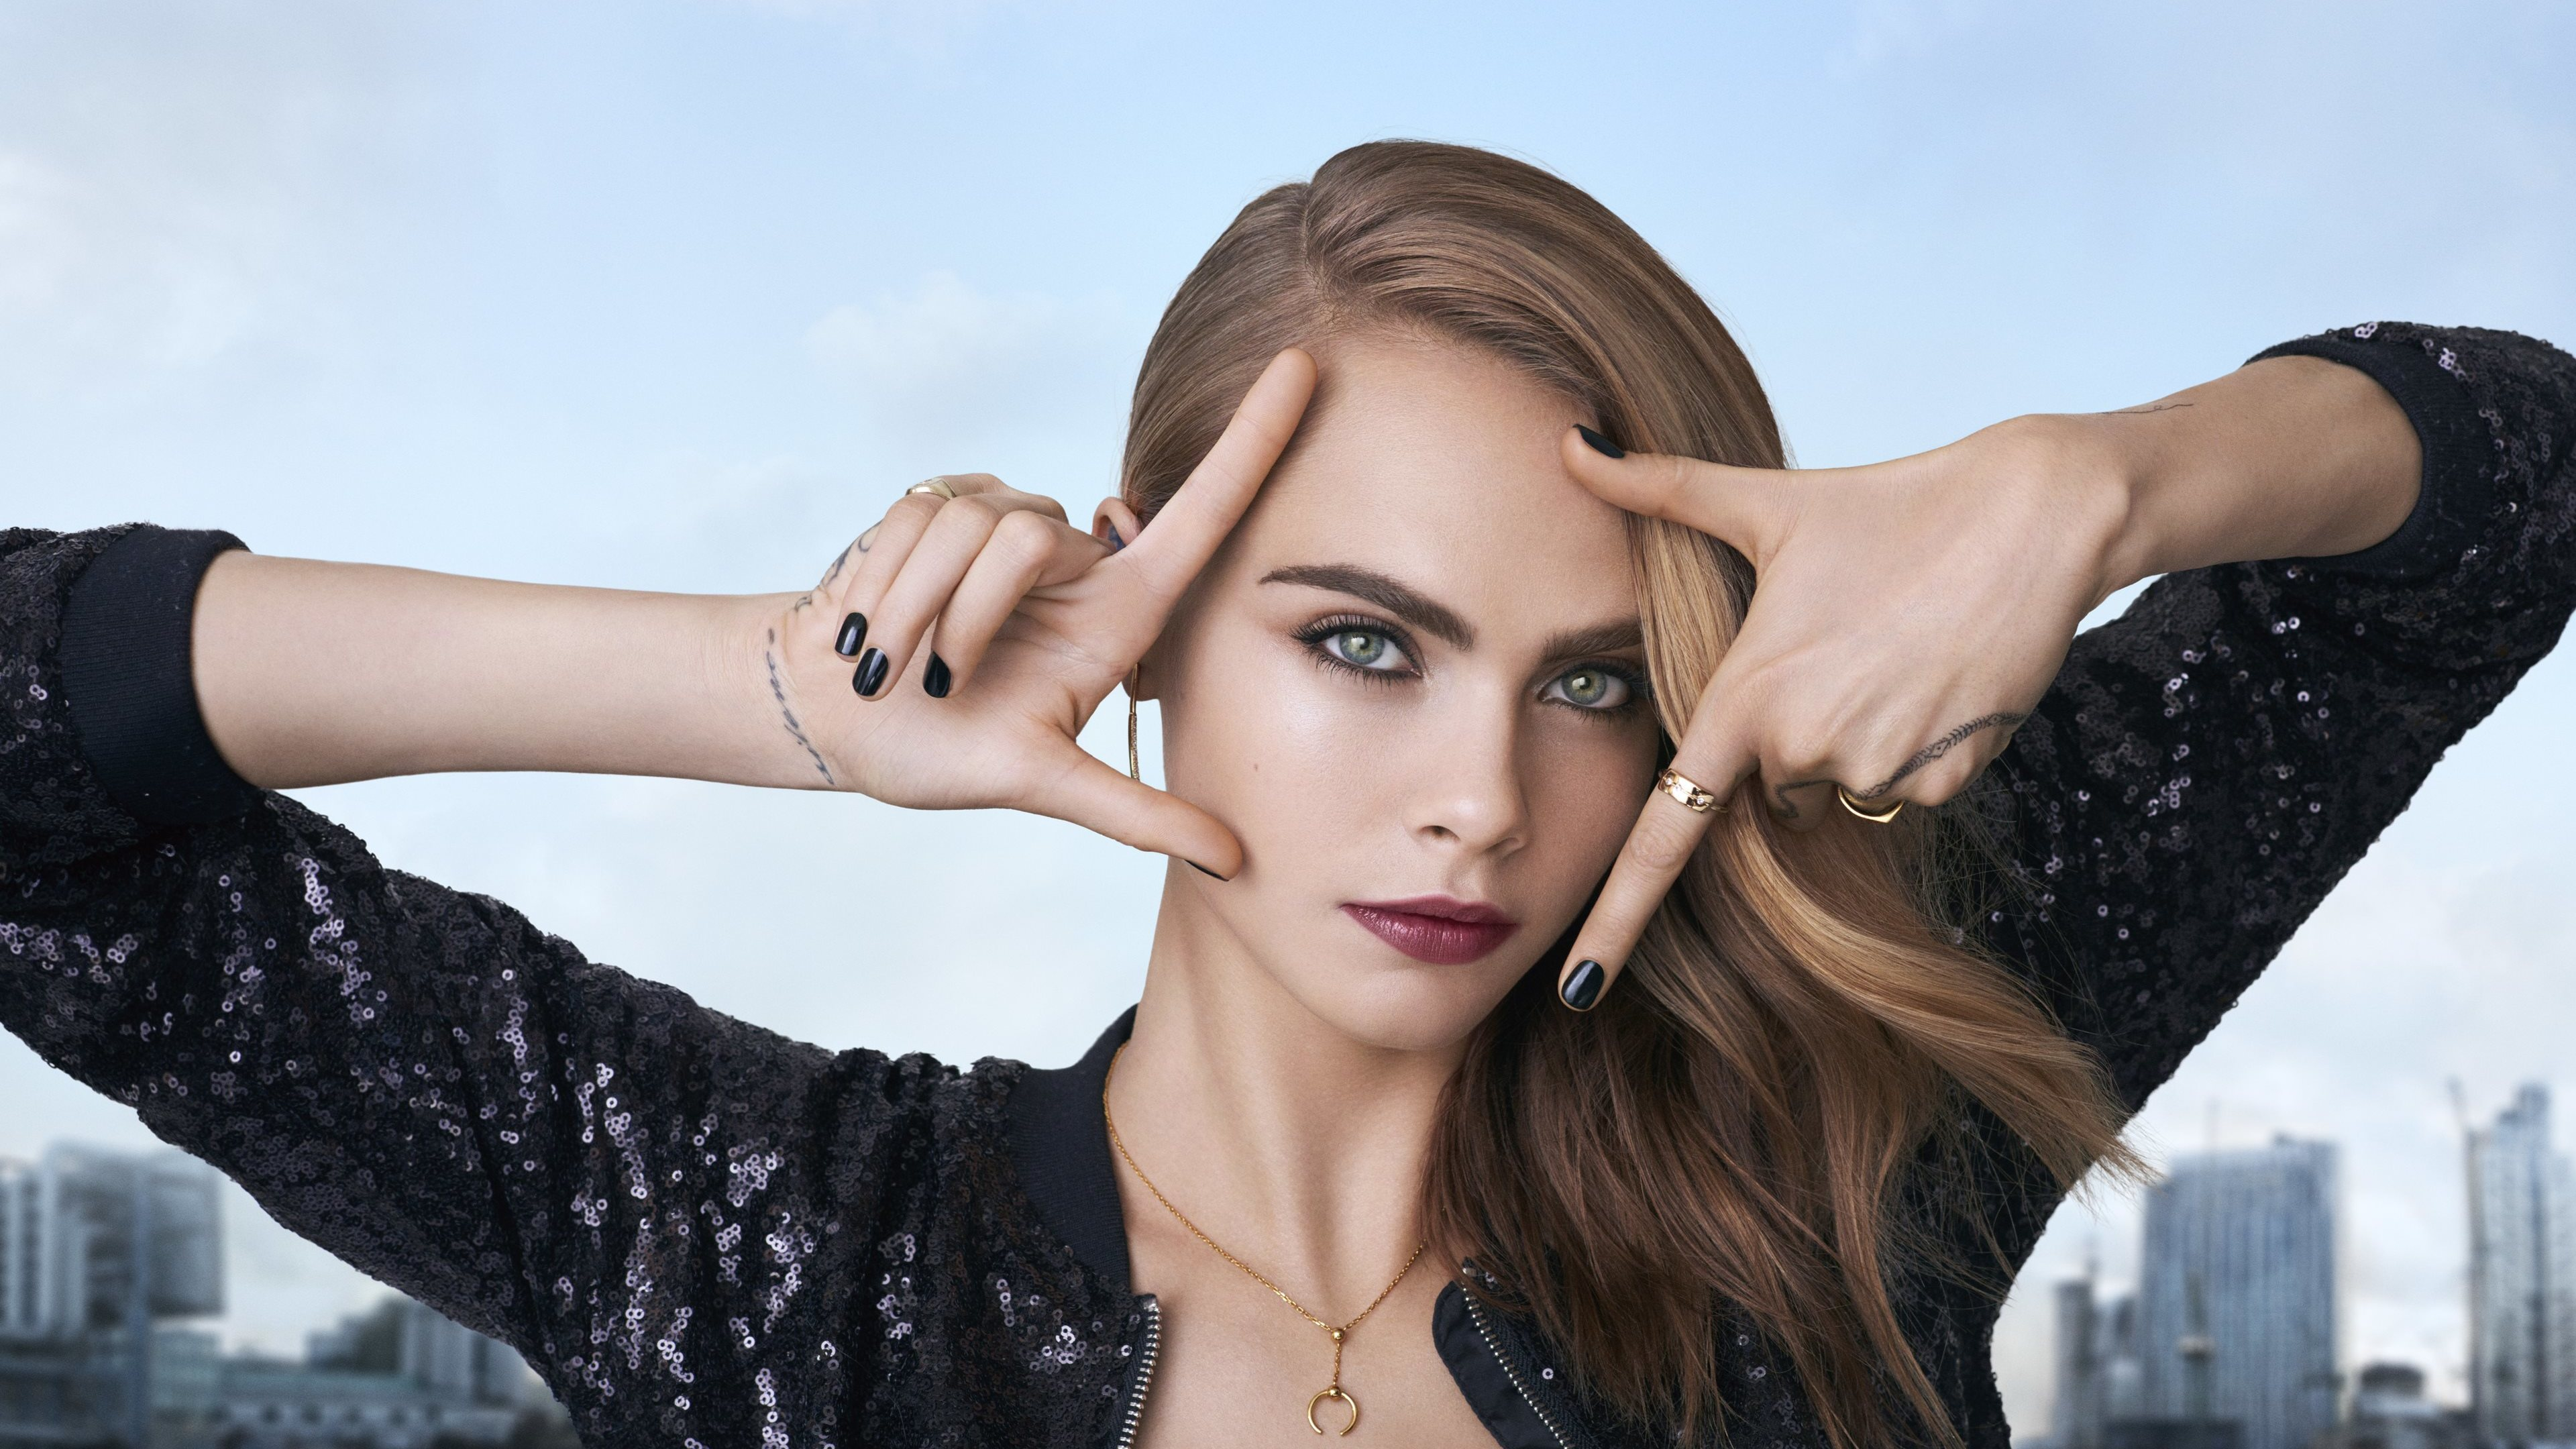 new cara delevingne 4k 1536950618 - New Cara Delevingne 4k - model wallpapers, hd-wallpapers, girls wallpapers, celebrities wallpapers, cara delevingne wallpapers, 4k-wallpapers